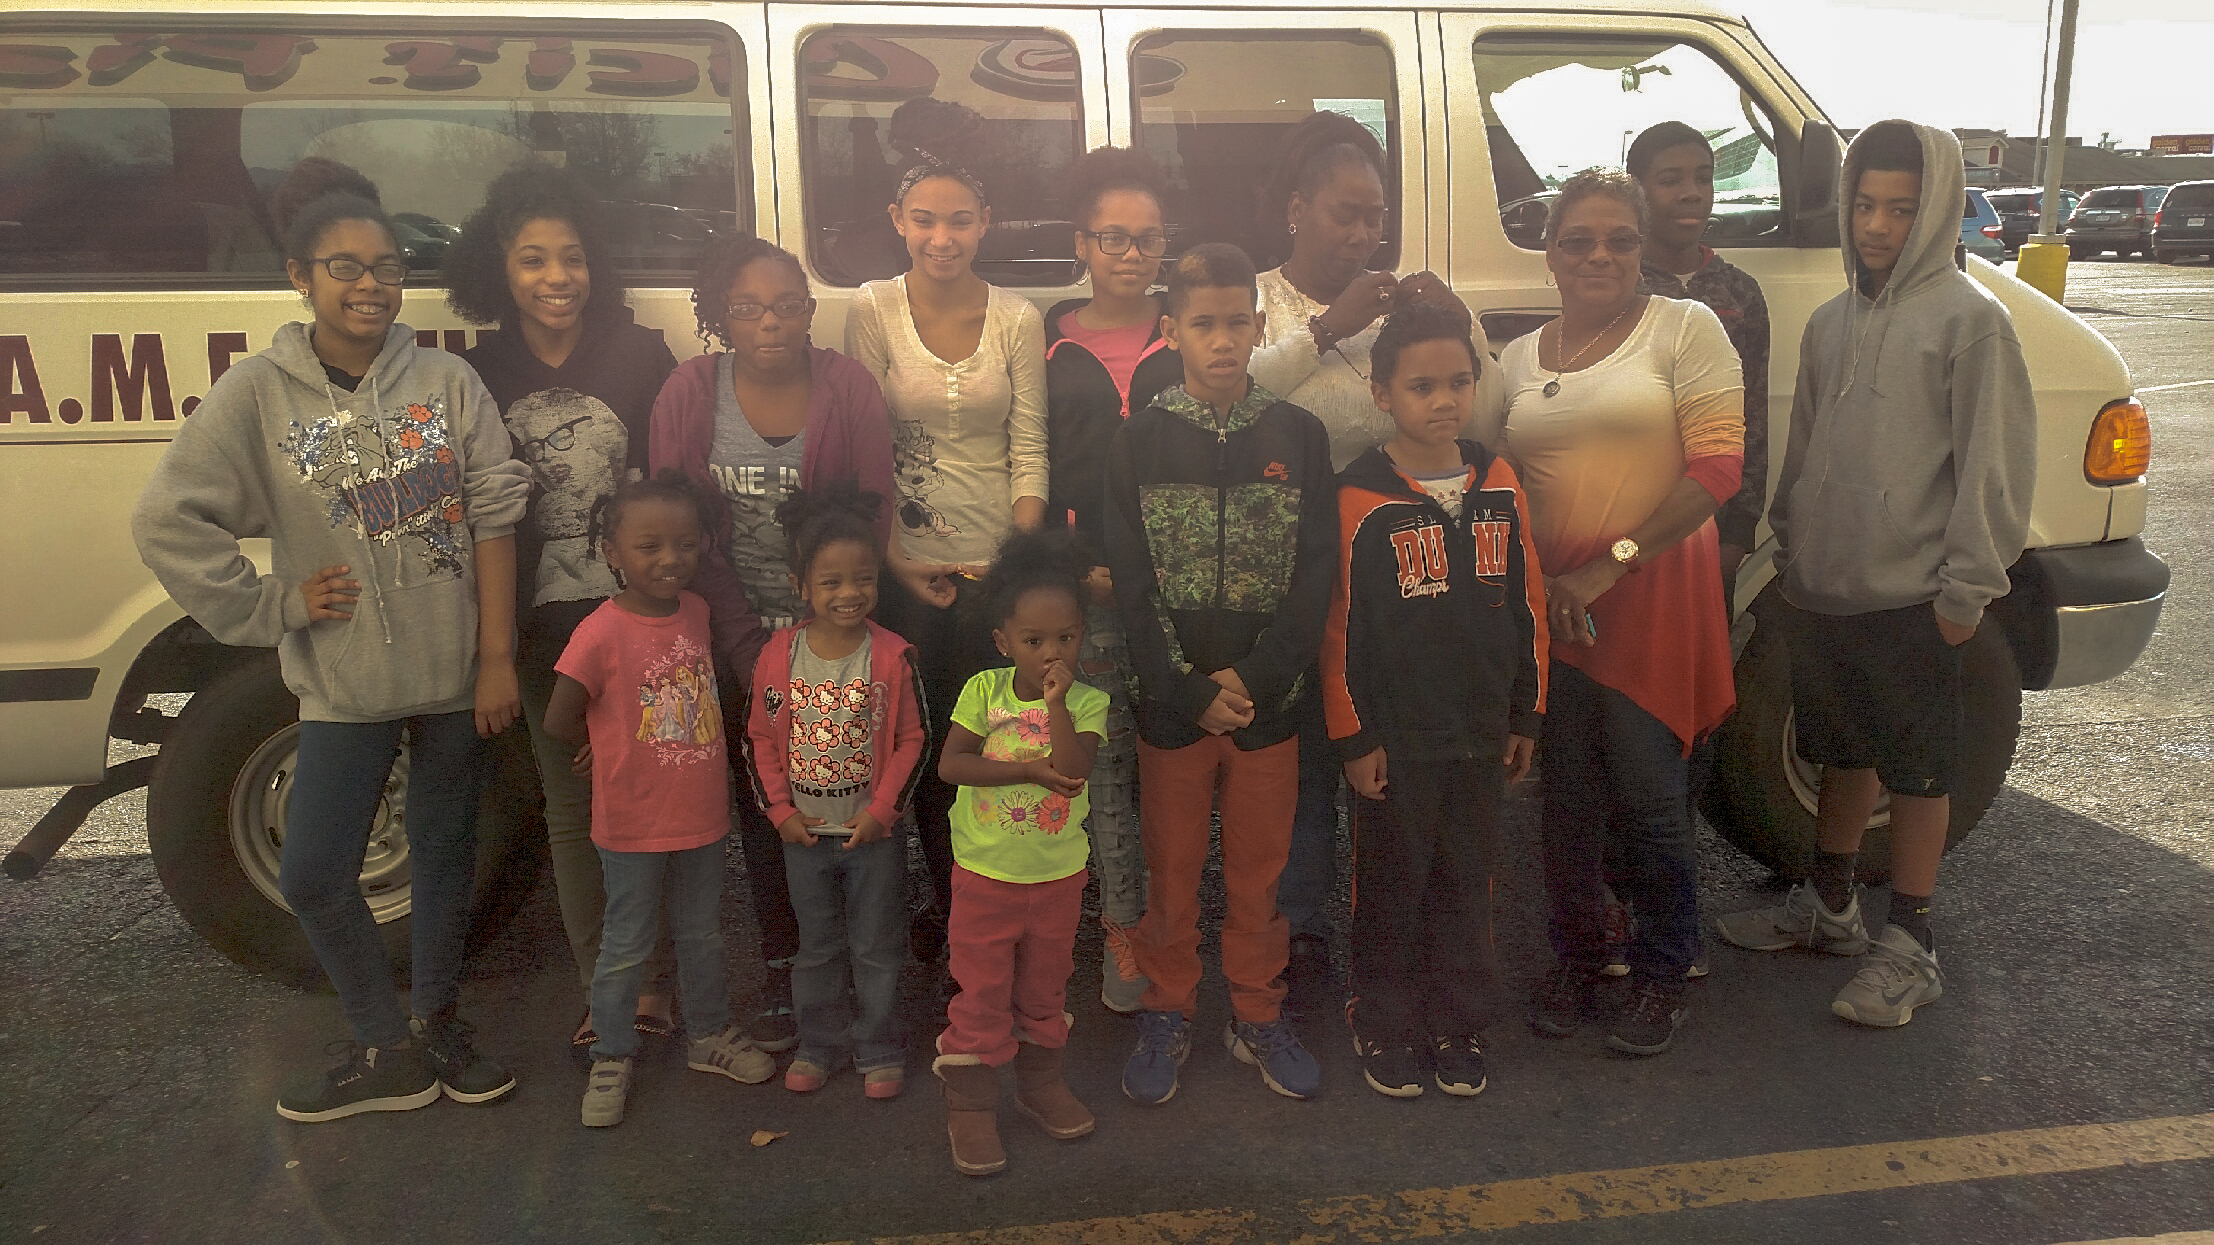 The Children's Ministry in front of an AME van.